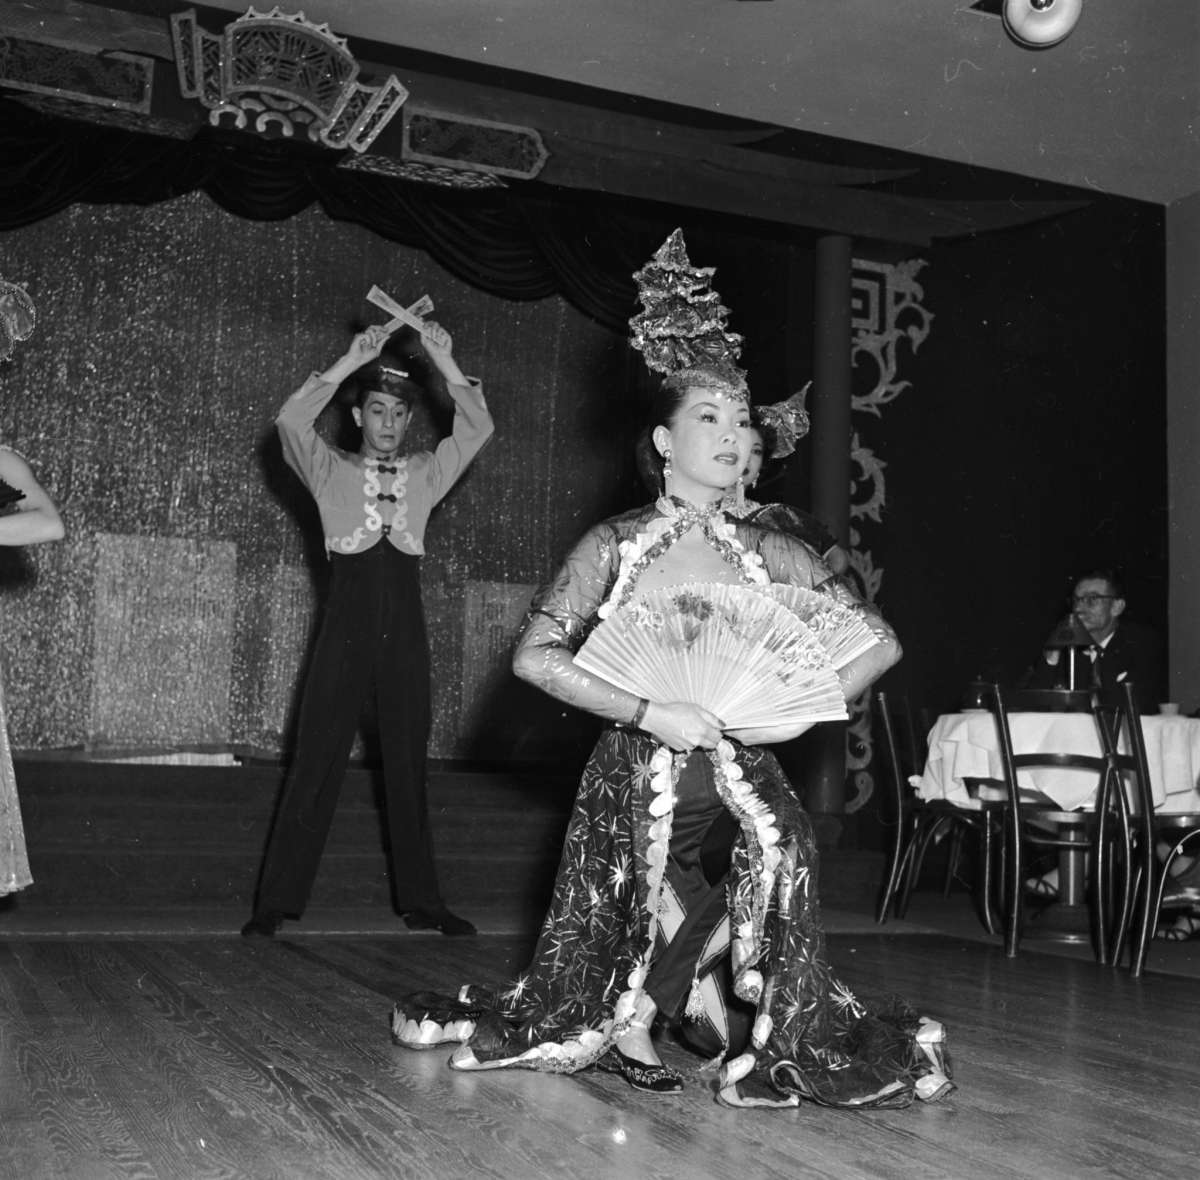 Chinese dancers Mae Tai Sing and Tony Wing perform an elaborate floor show circa 1955 at Forbidden City, a nightclub in Chinatown, San Francisco.